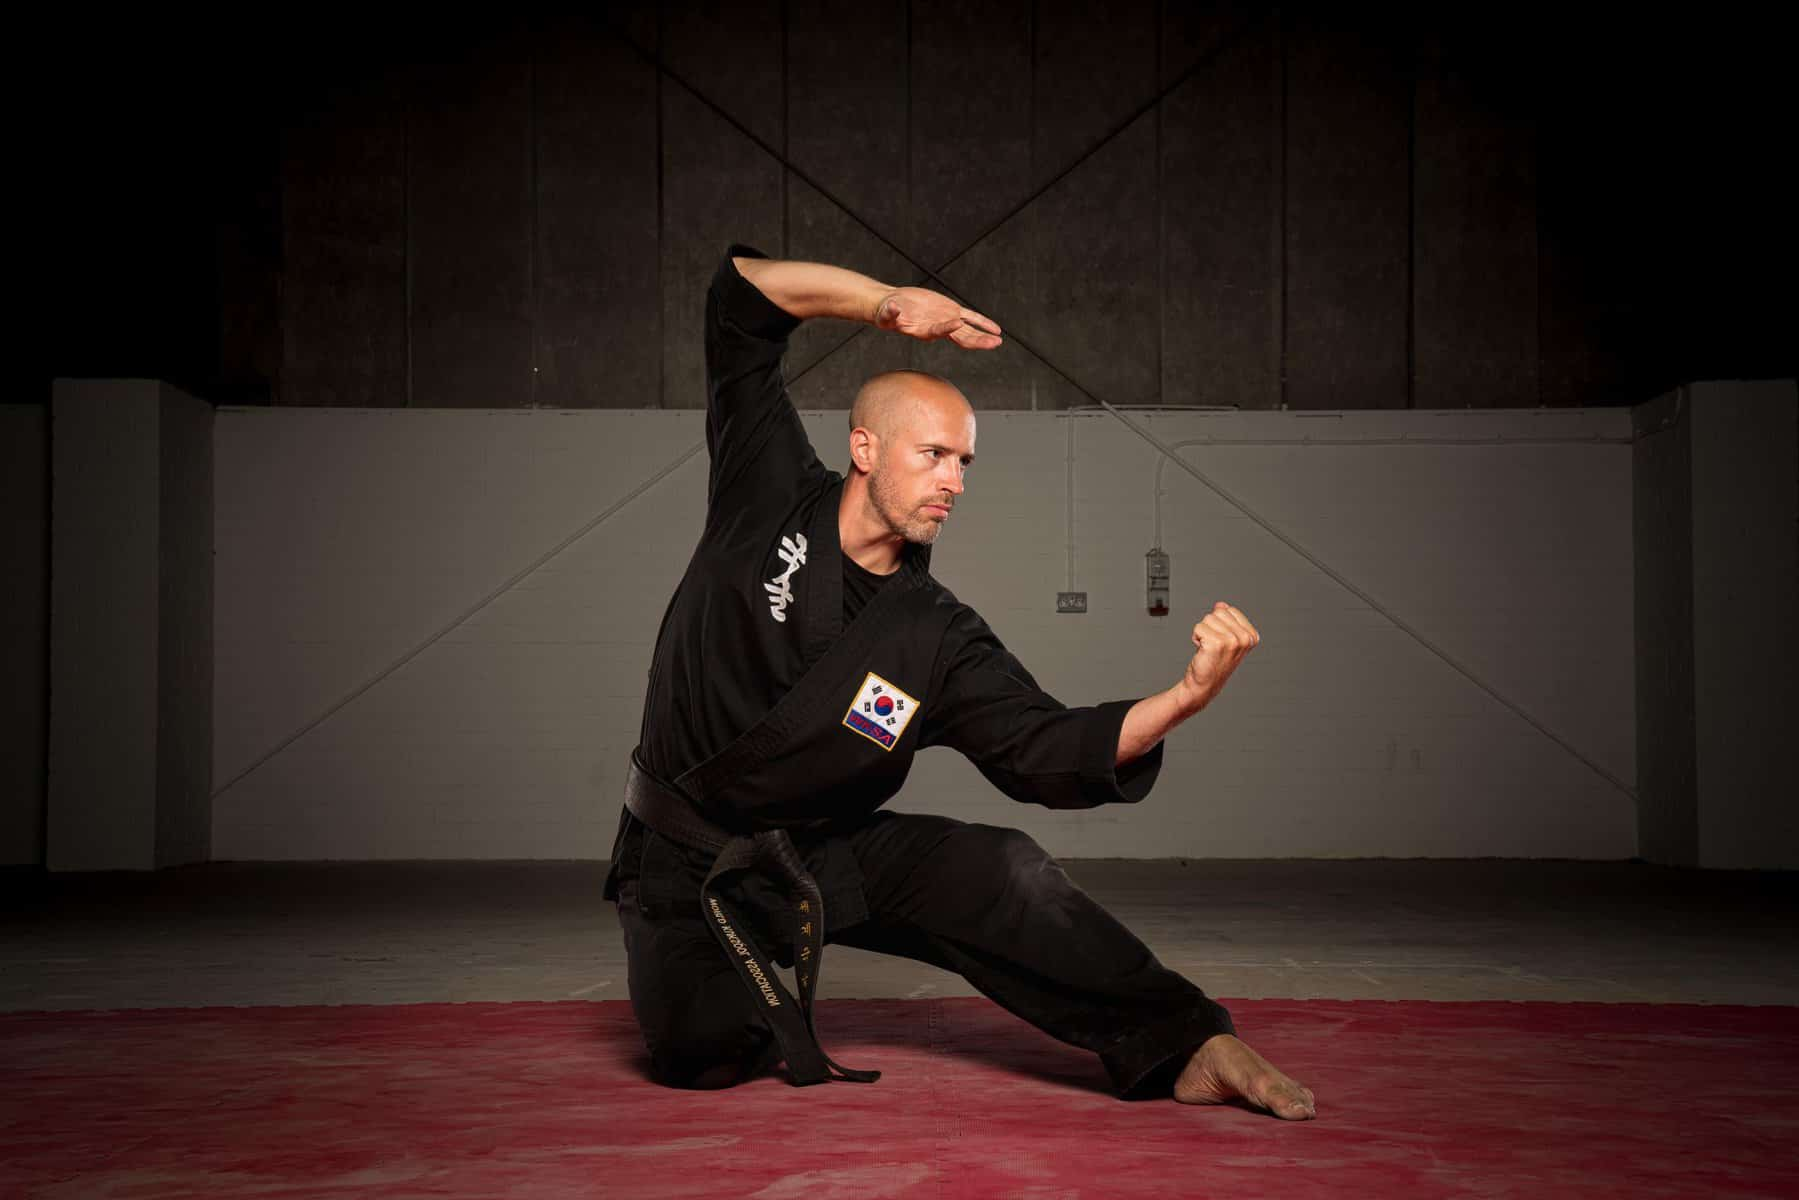 GRAEME TEMPLE – Kuk Soo Won School Owner & Senior Black Belt Instructor